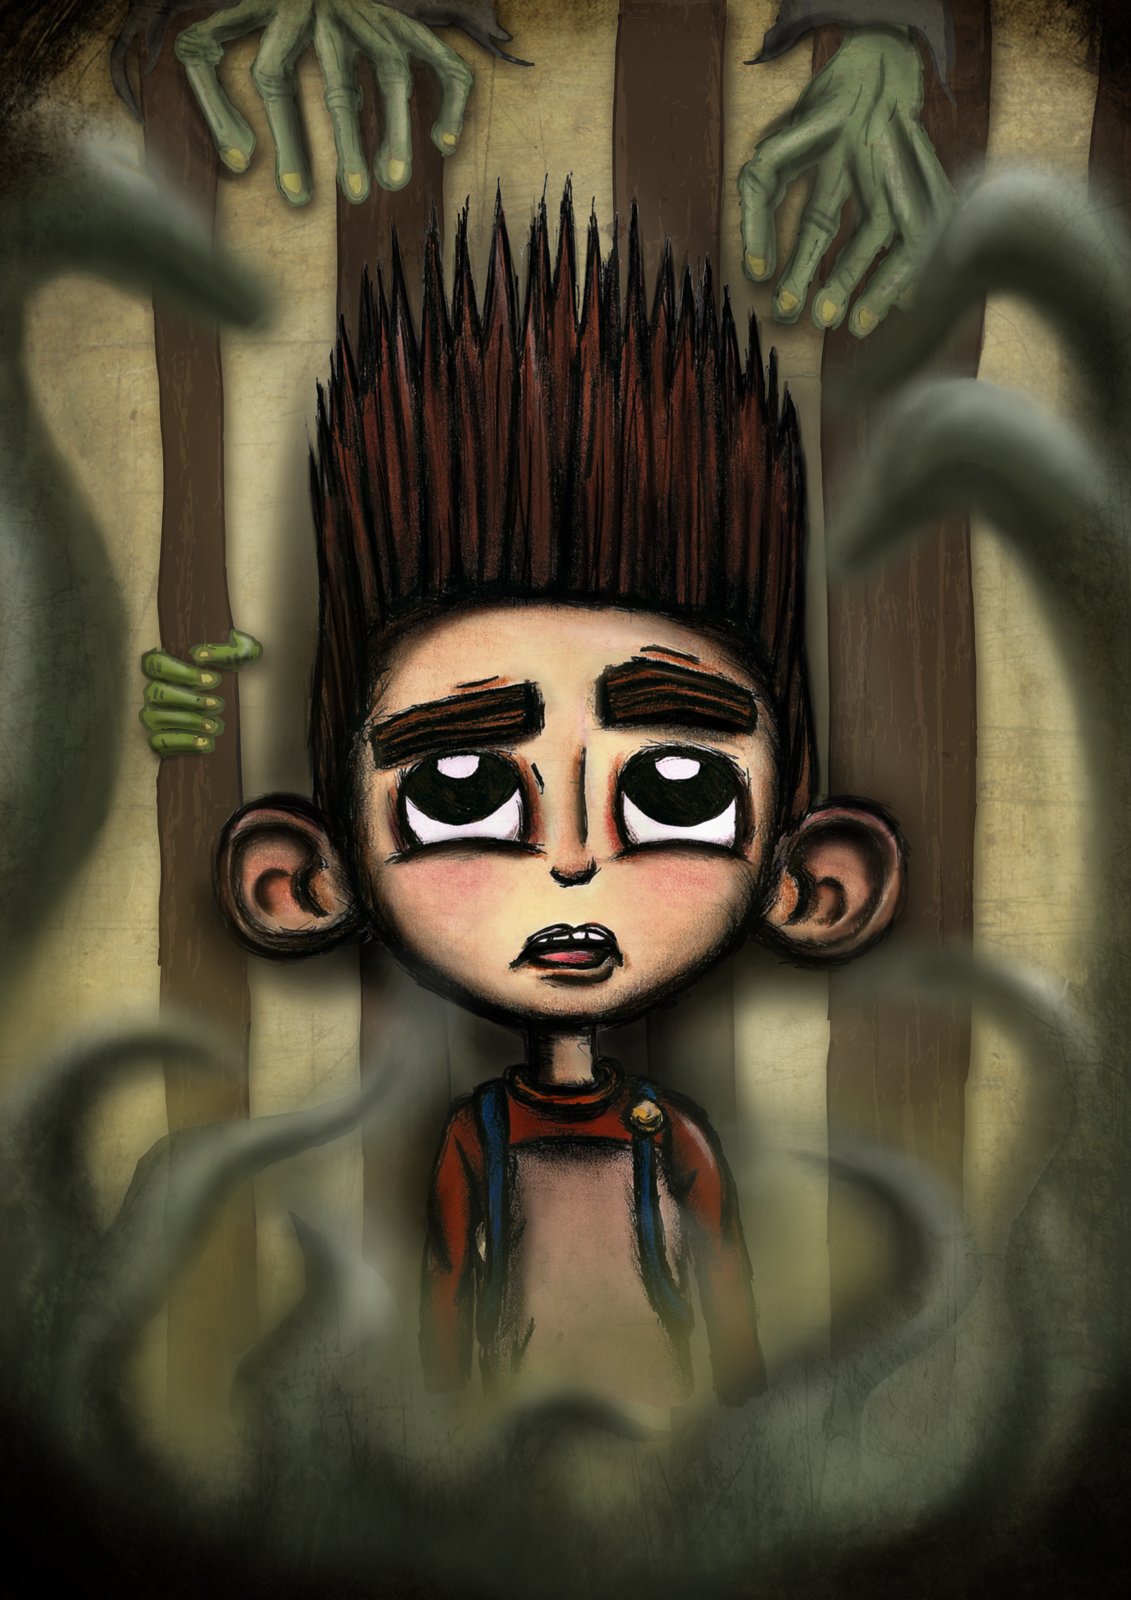 RT @AshBob87: my ParaNorman piece, finally finished. Can't wait for the release. #weirdwins #paranorman @ParaNorman http://t.co/MItWe1nO